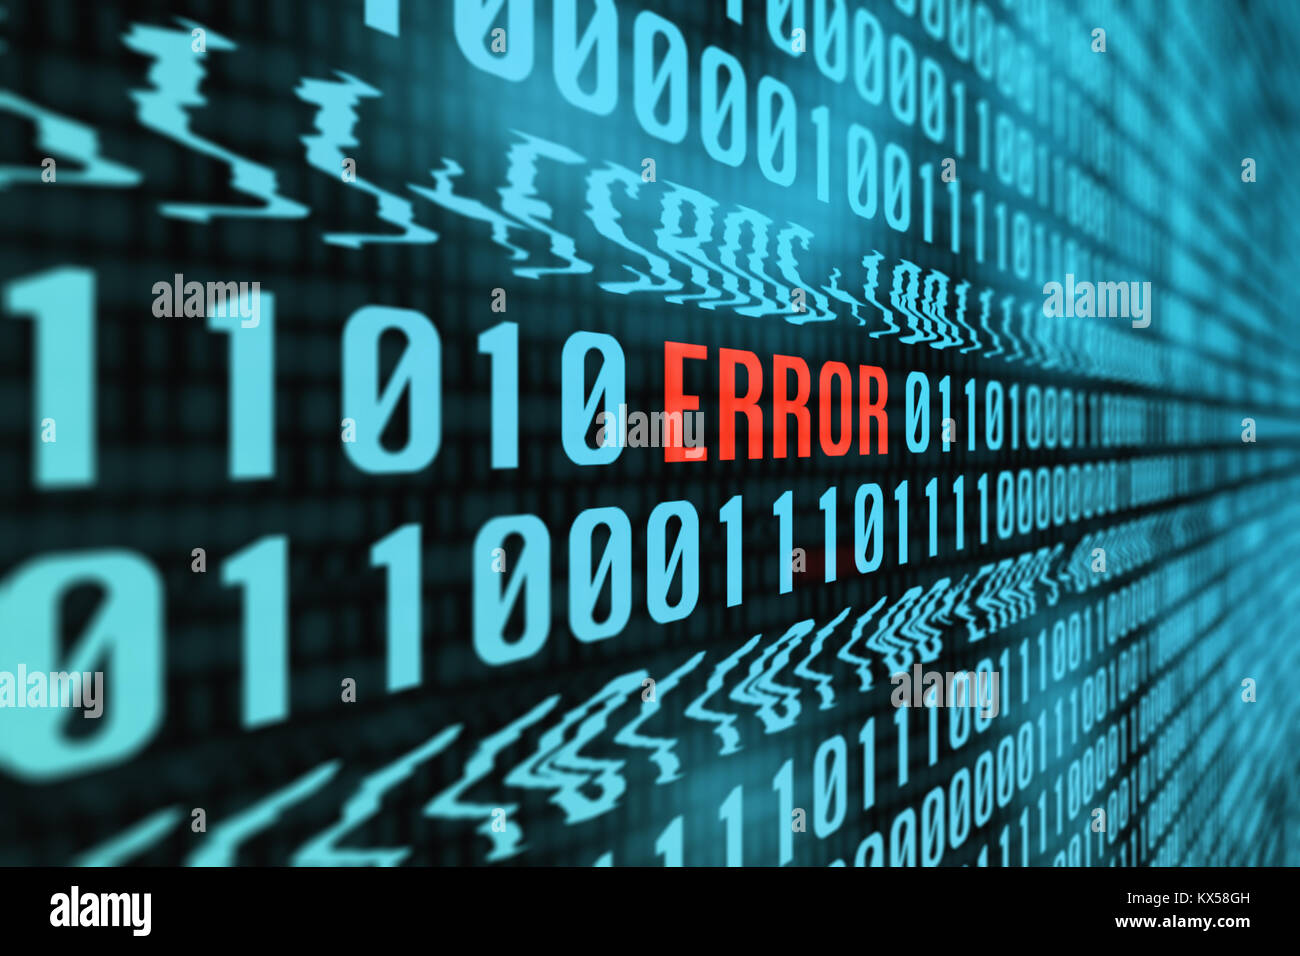 Concept With a Screen Full of Binary Computer Data Glitching into the Word 'Error' in Red - Stock Image